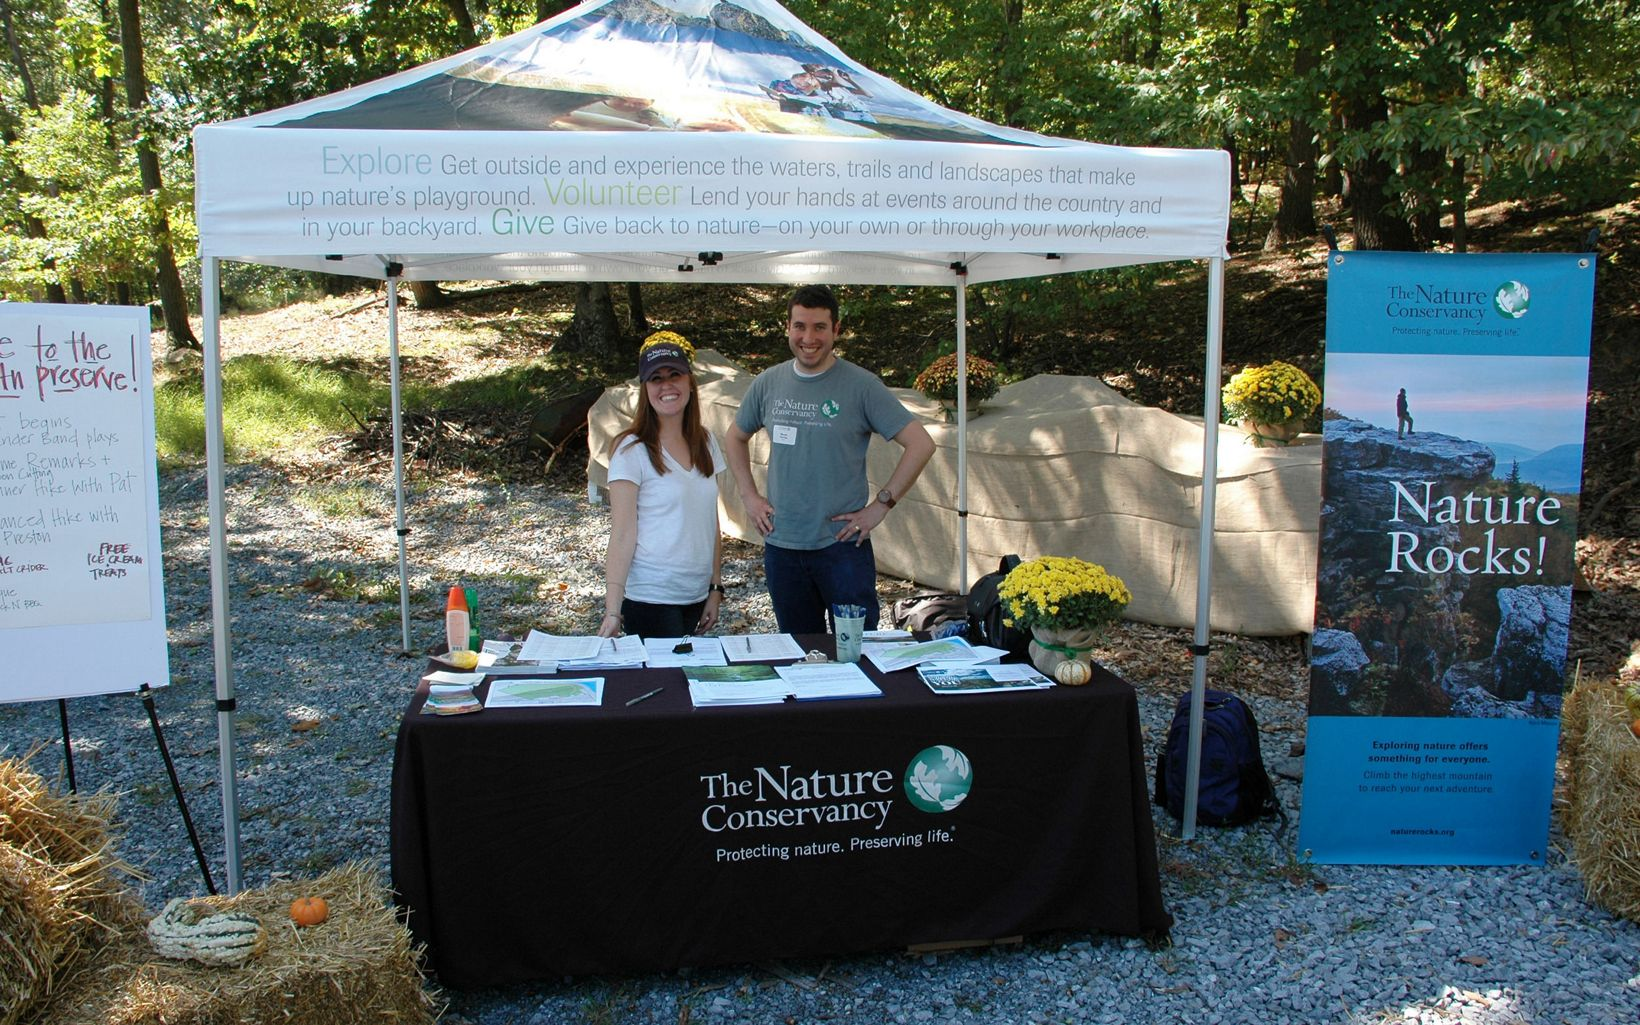 Two TNC staff members stand under a tent.